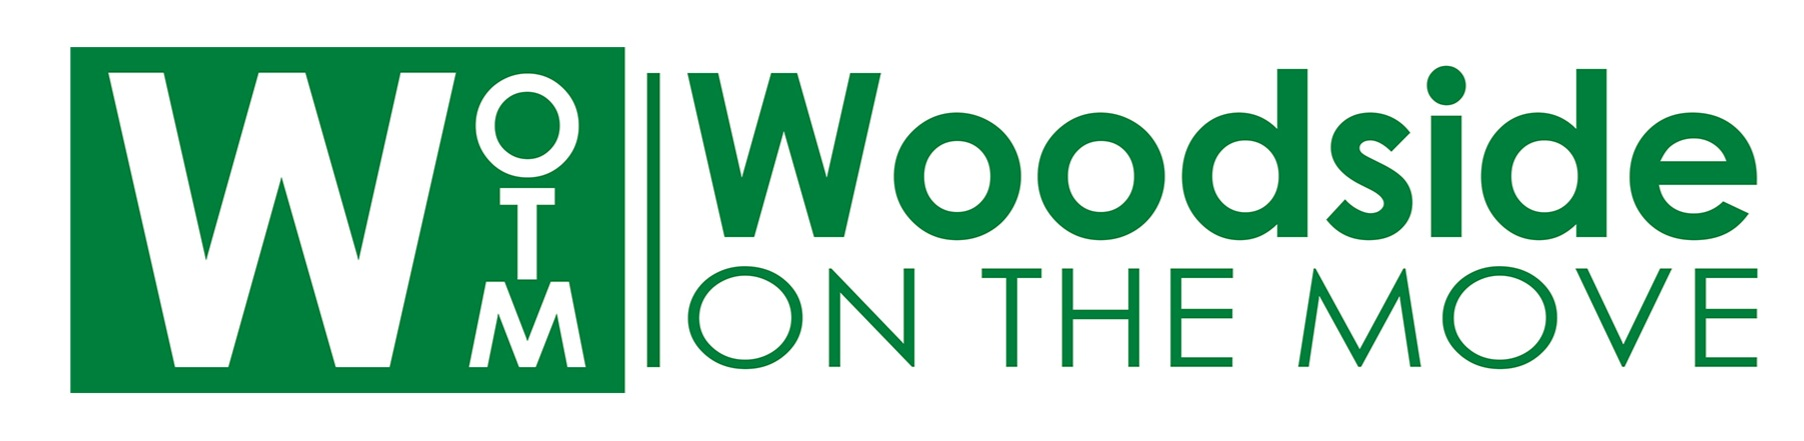 - Client needed a new logo with a modern look and feel appealing to younger audiences, but keeping their emblematic colors, hunter green and white.